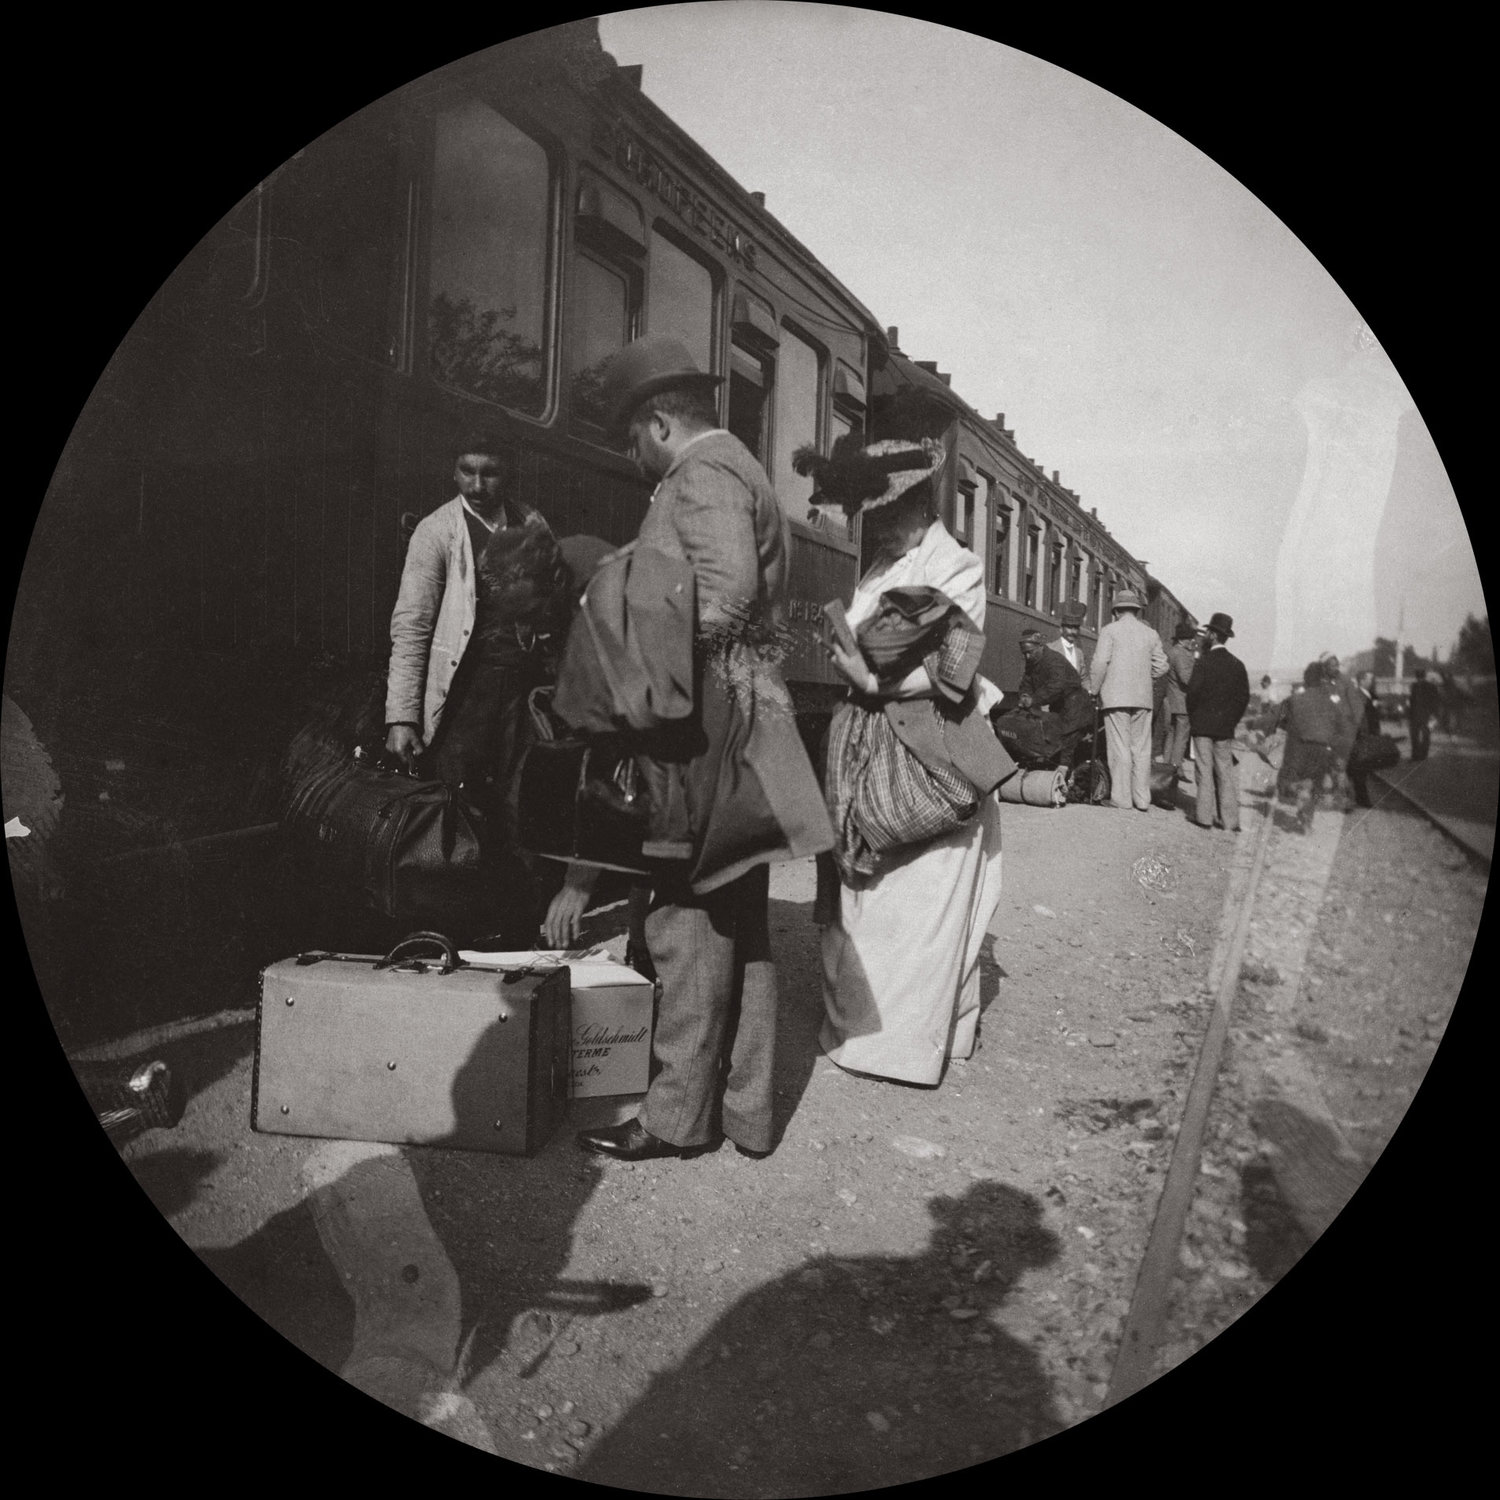 In 1890, photographer Paul Nadar took the oldest known photograph of the arrival of the Orient Express at its final destination.